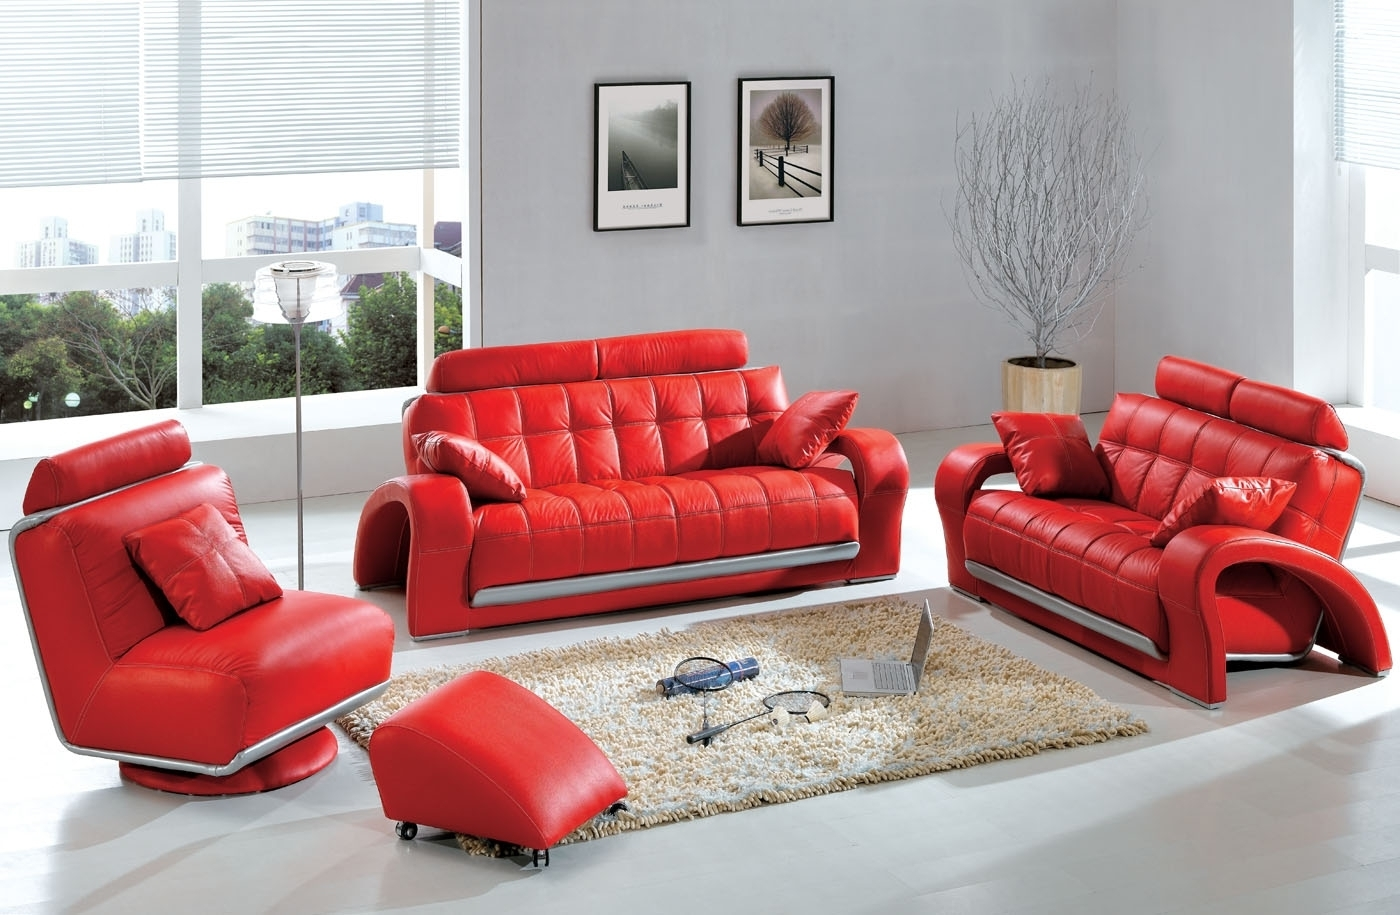 Most Recent Red Leather Couches For Living Room Within Modern & Contemporary Leather Sofa & Sectional Sets (View 3 of 15)